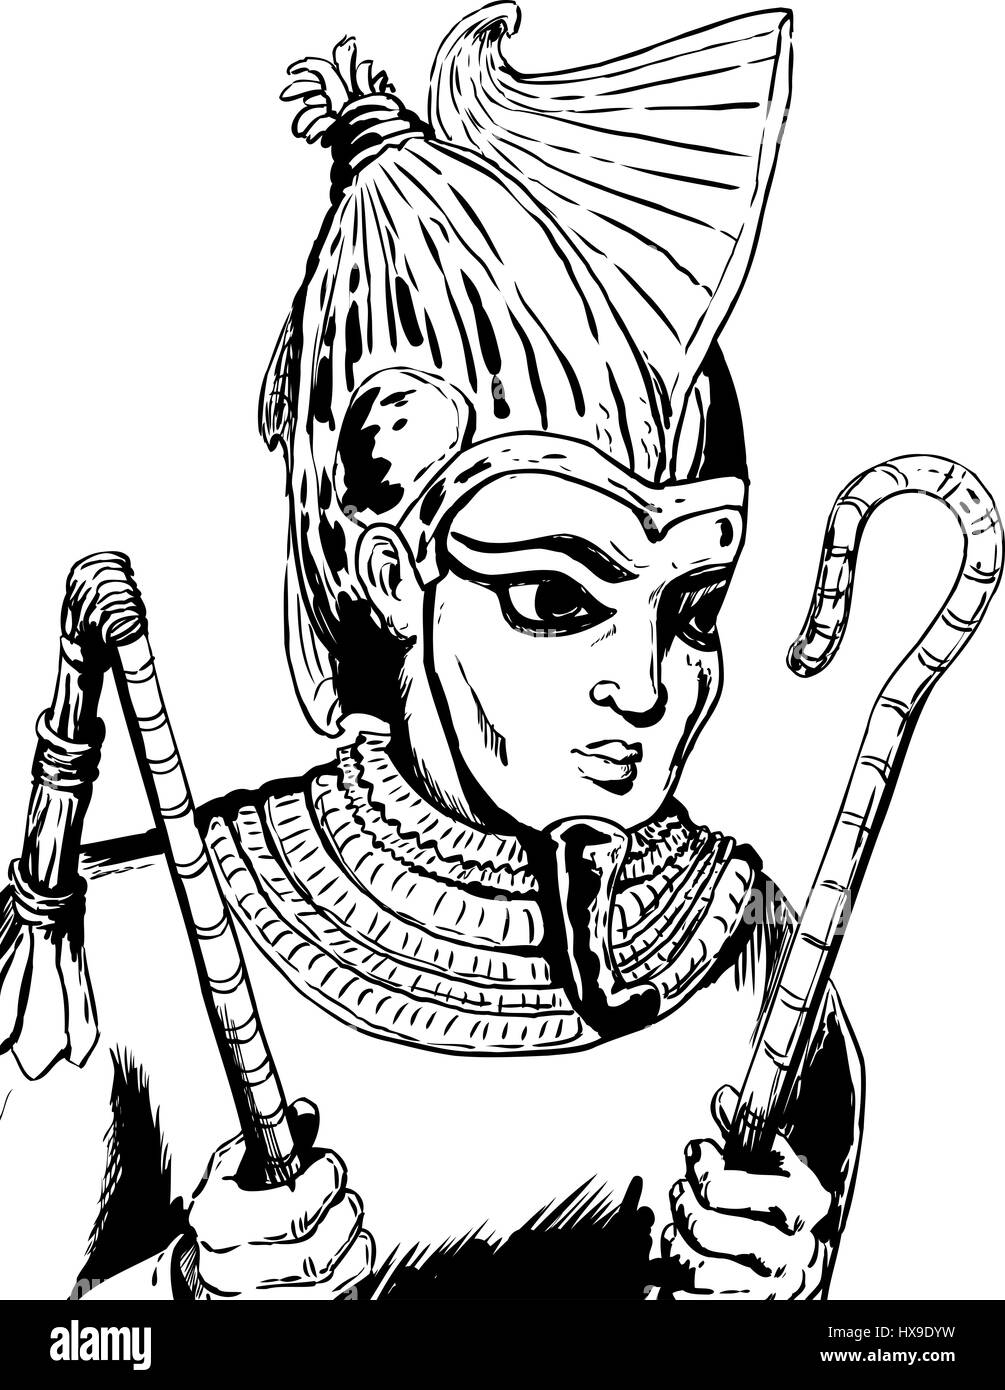 1f346df1c037 Outlined illustration of Osiris, the Egyptian God, holding his crook and  flail - Stock